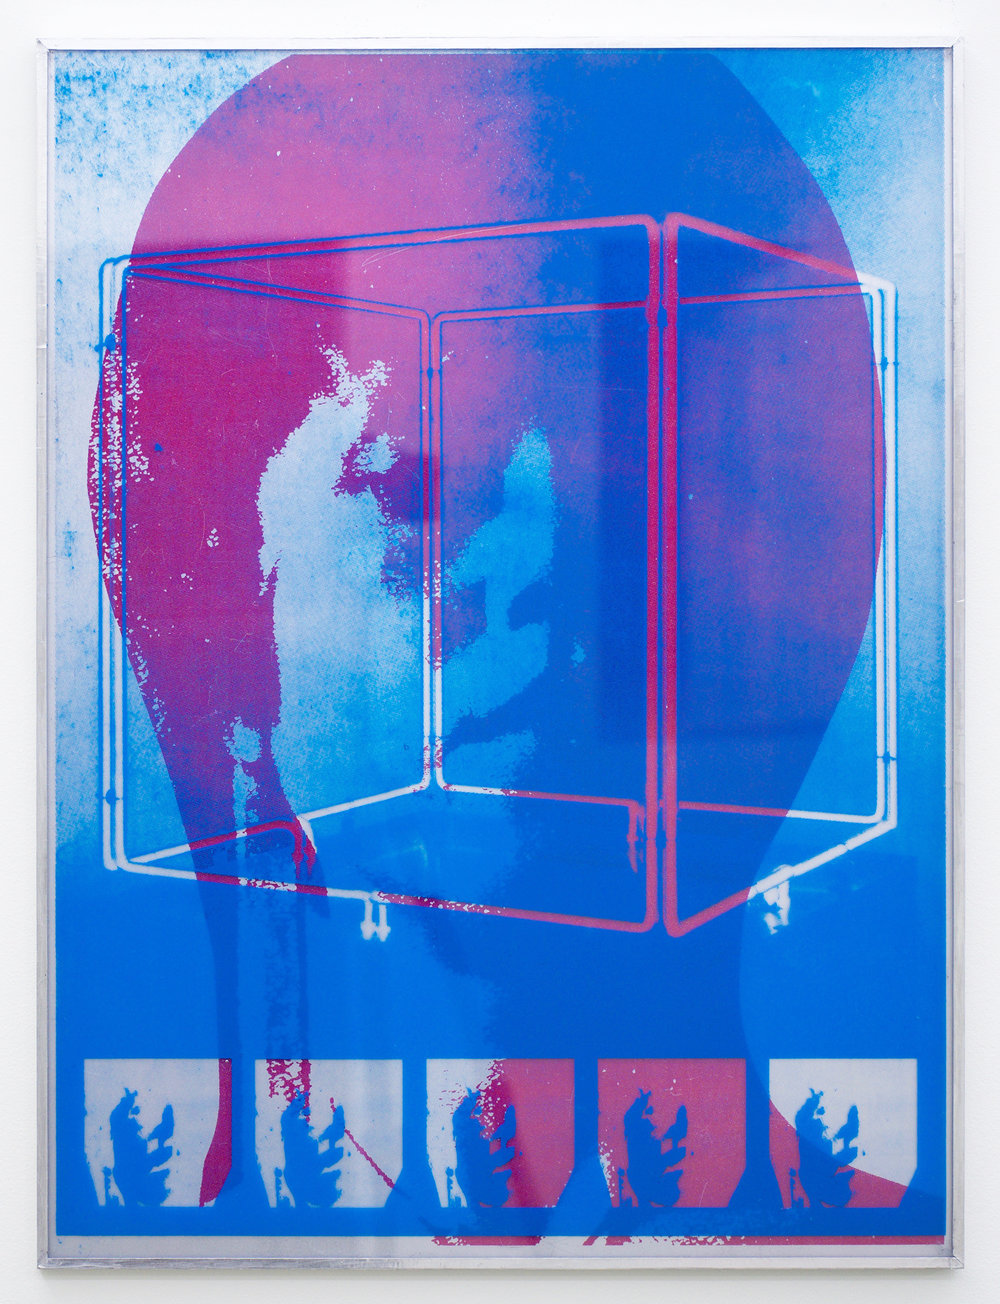 "GWENAËL RATTKE  Plastic Poster #1 , 2016 acrylic and unique silkscreen on plexiglas, 26"" x 19.75"""